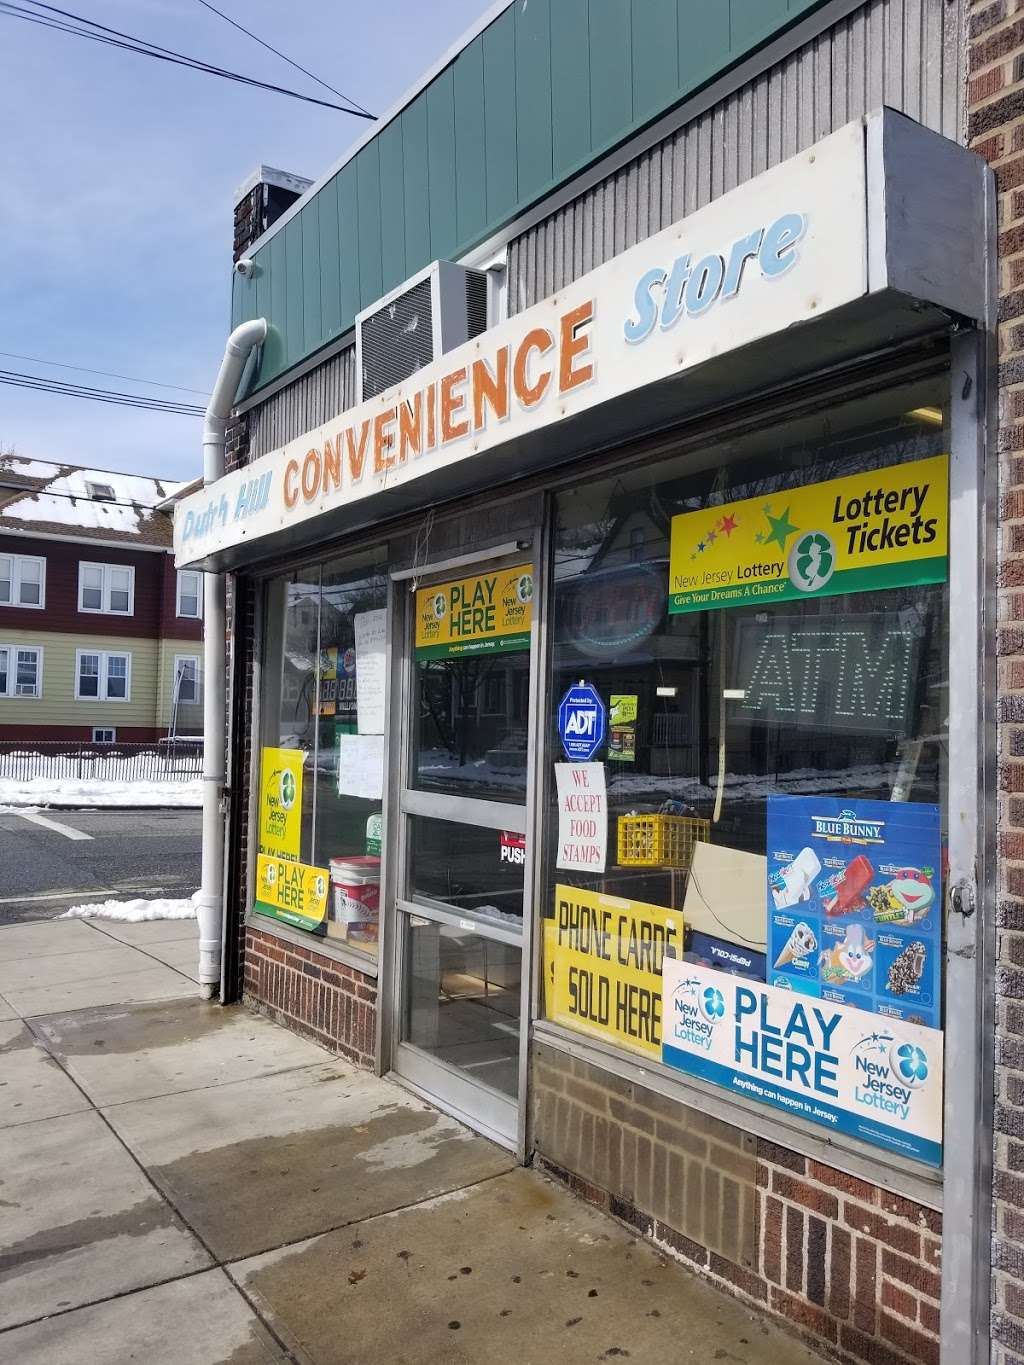 Dutch Hill CONVENIENCE Store - convenience store  | Photo 1 of 5 | Address: 394 Highland Ave, Clifton, NJ 07011, USA